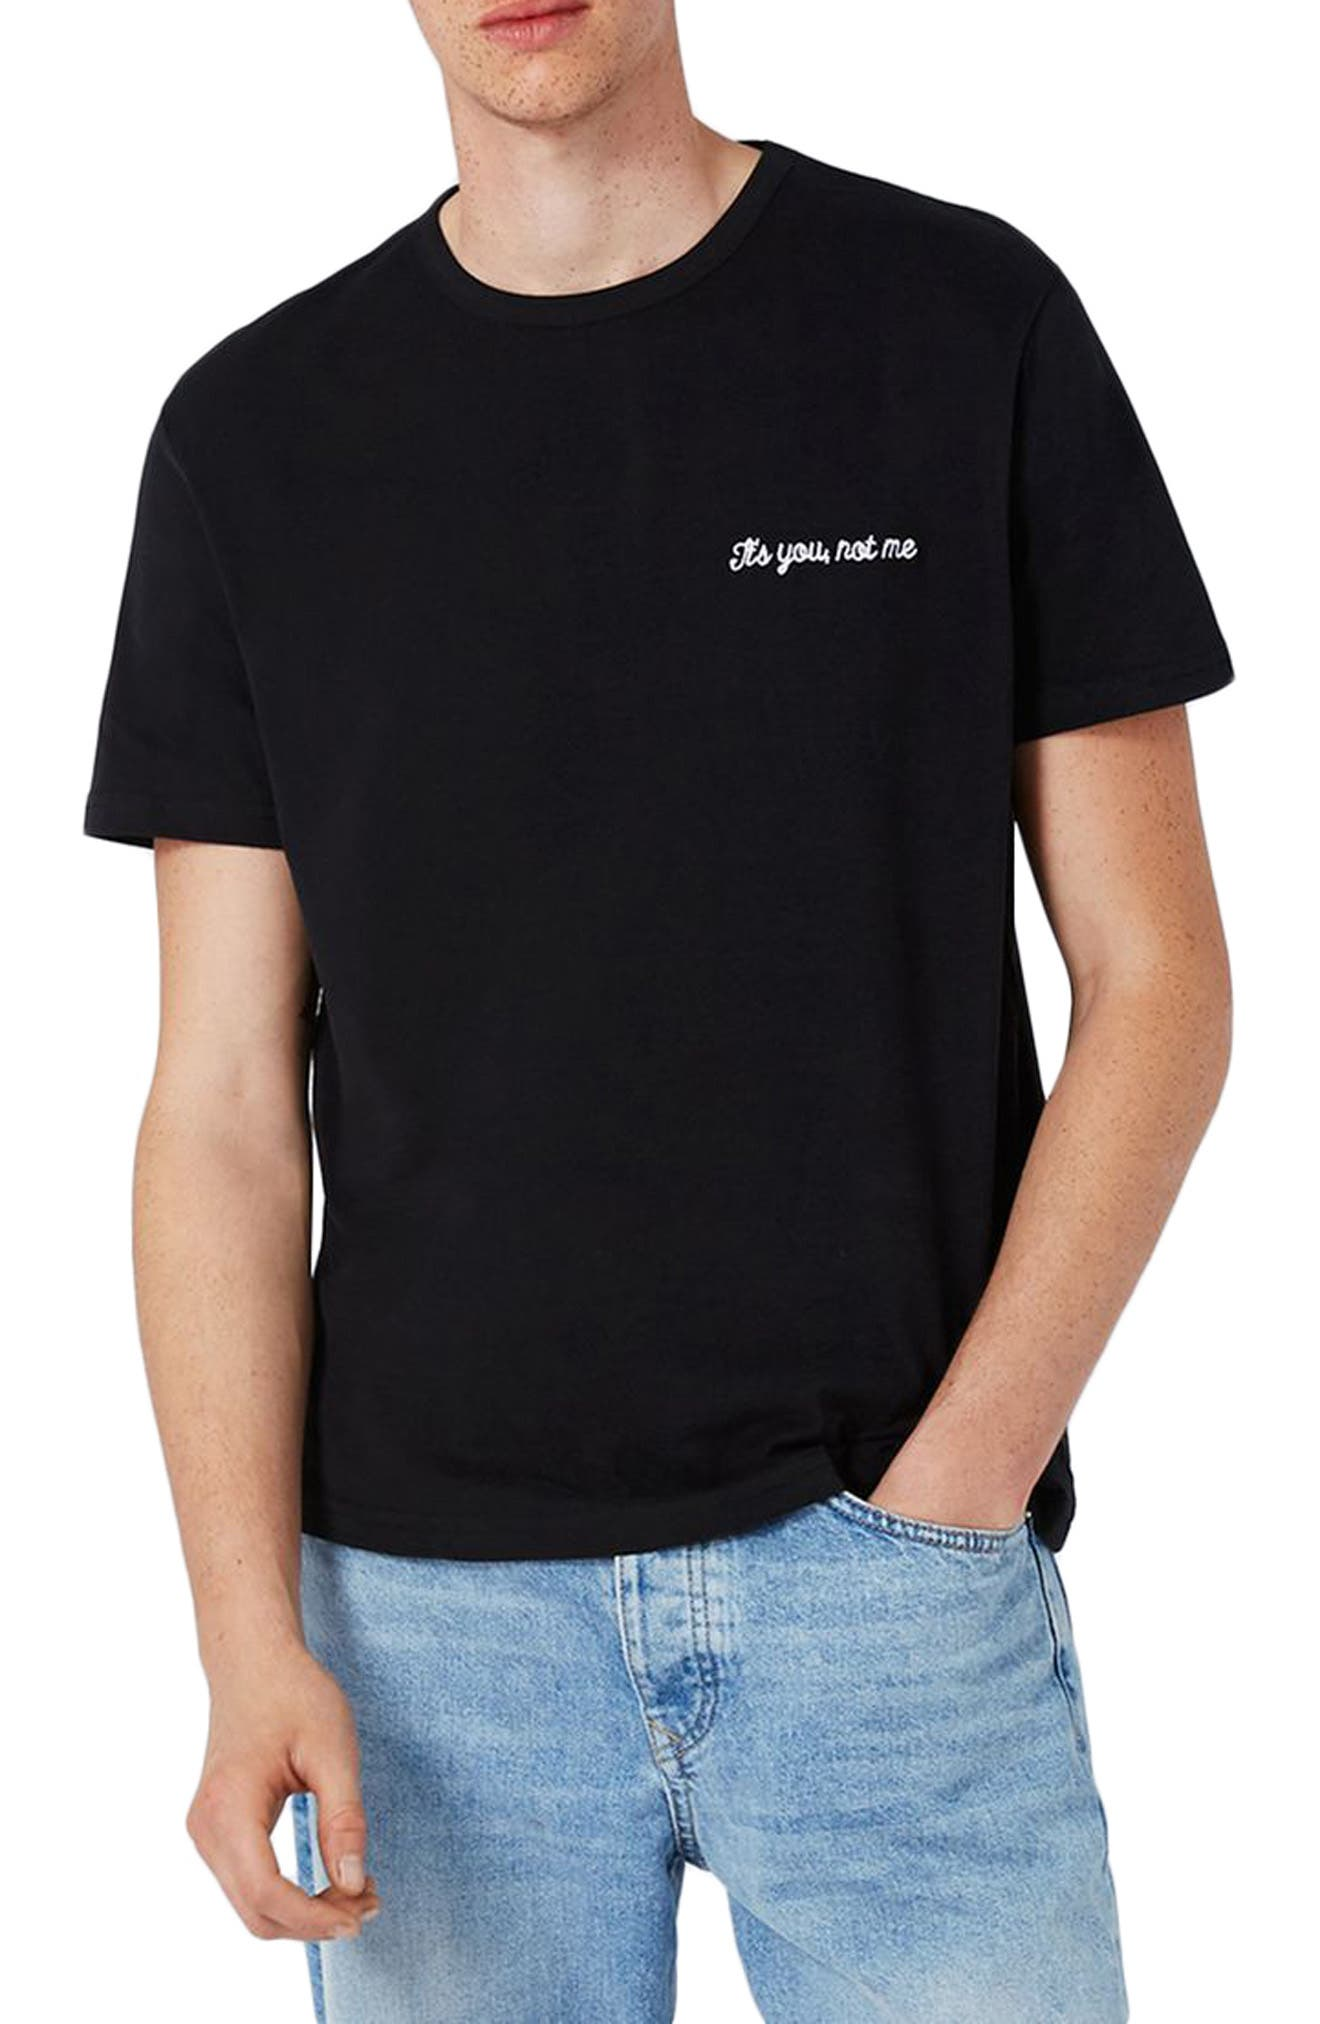 Not Me Embroidery T-Shirt,                         Main,                         color, Black